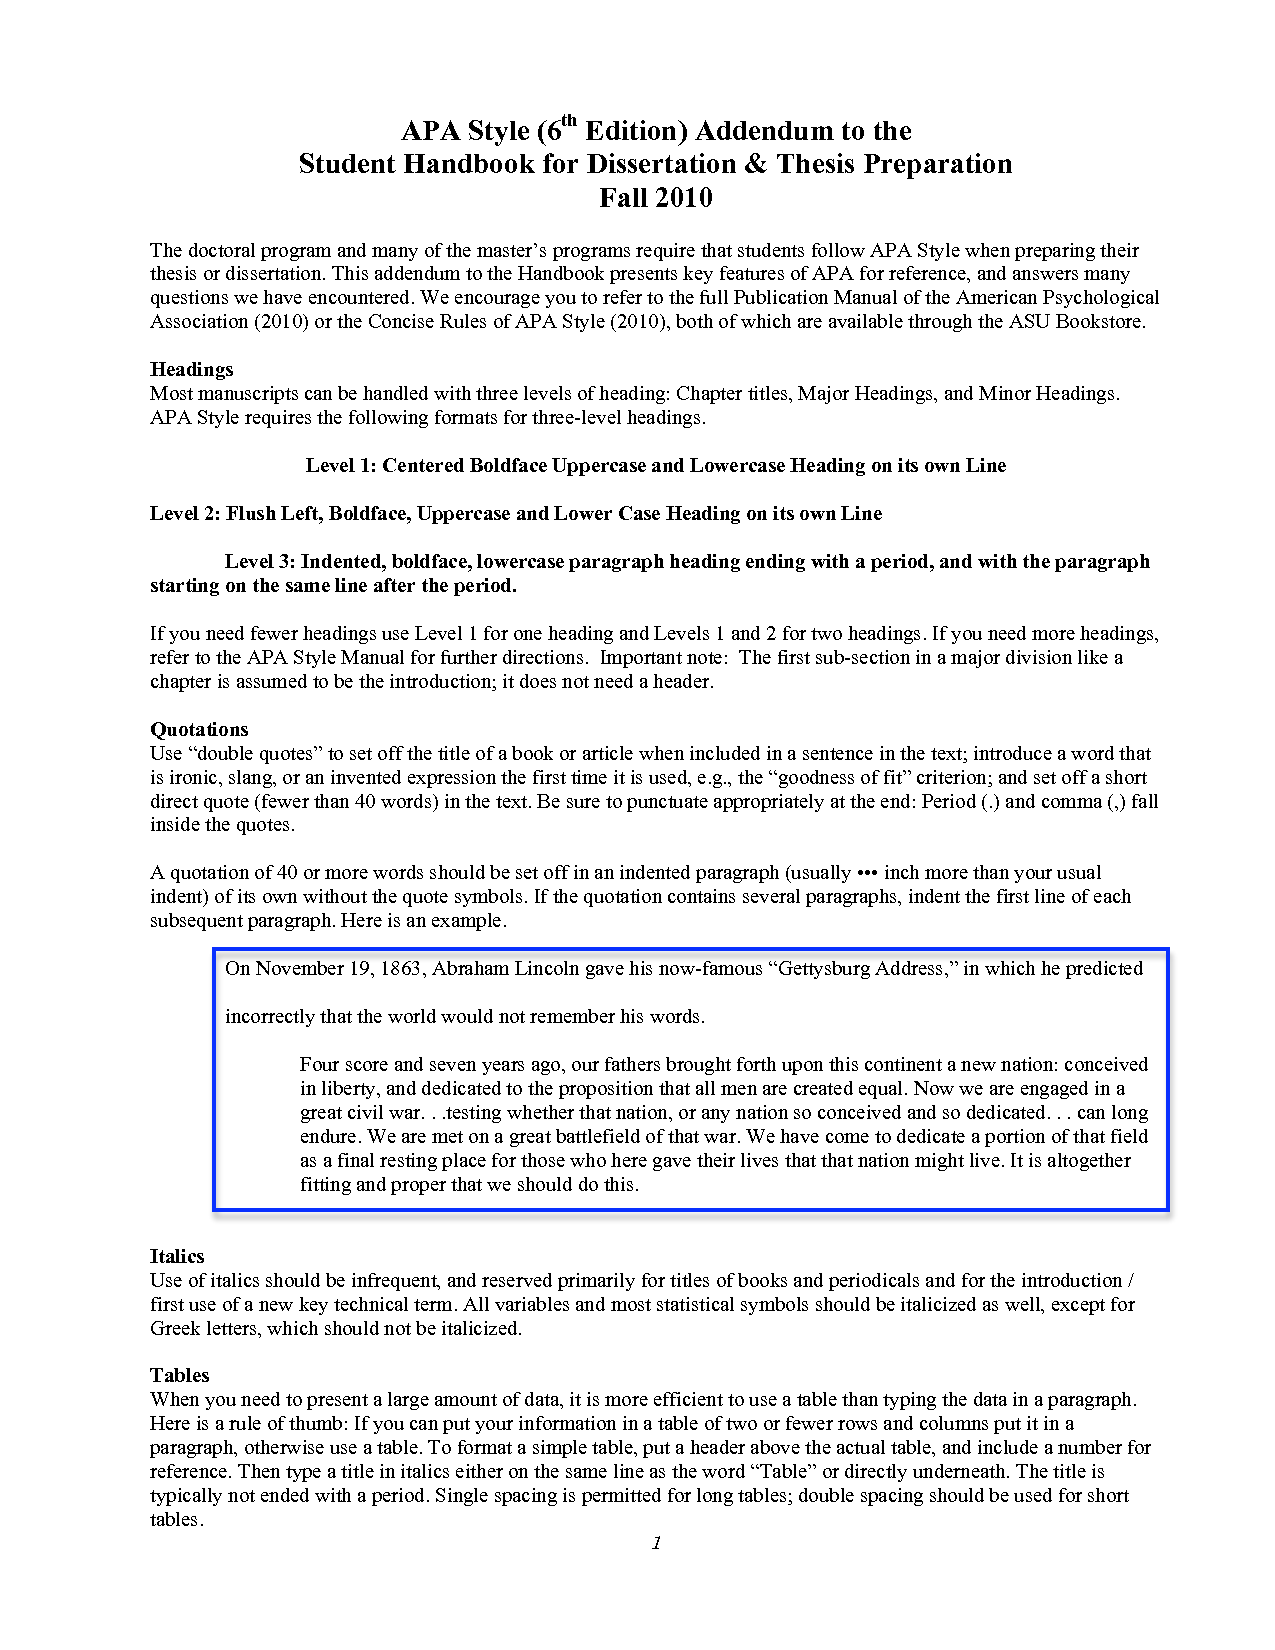 004 Apa Format Research Paper Example 6th Edition Sample Colesecolossus Elegant Header Archaicawful 2015 Full